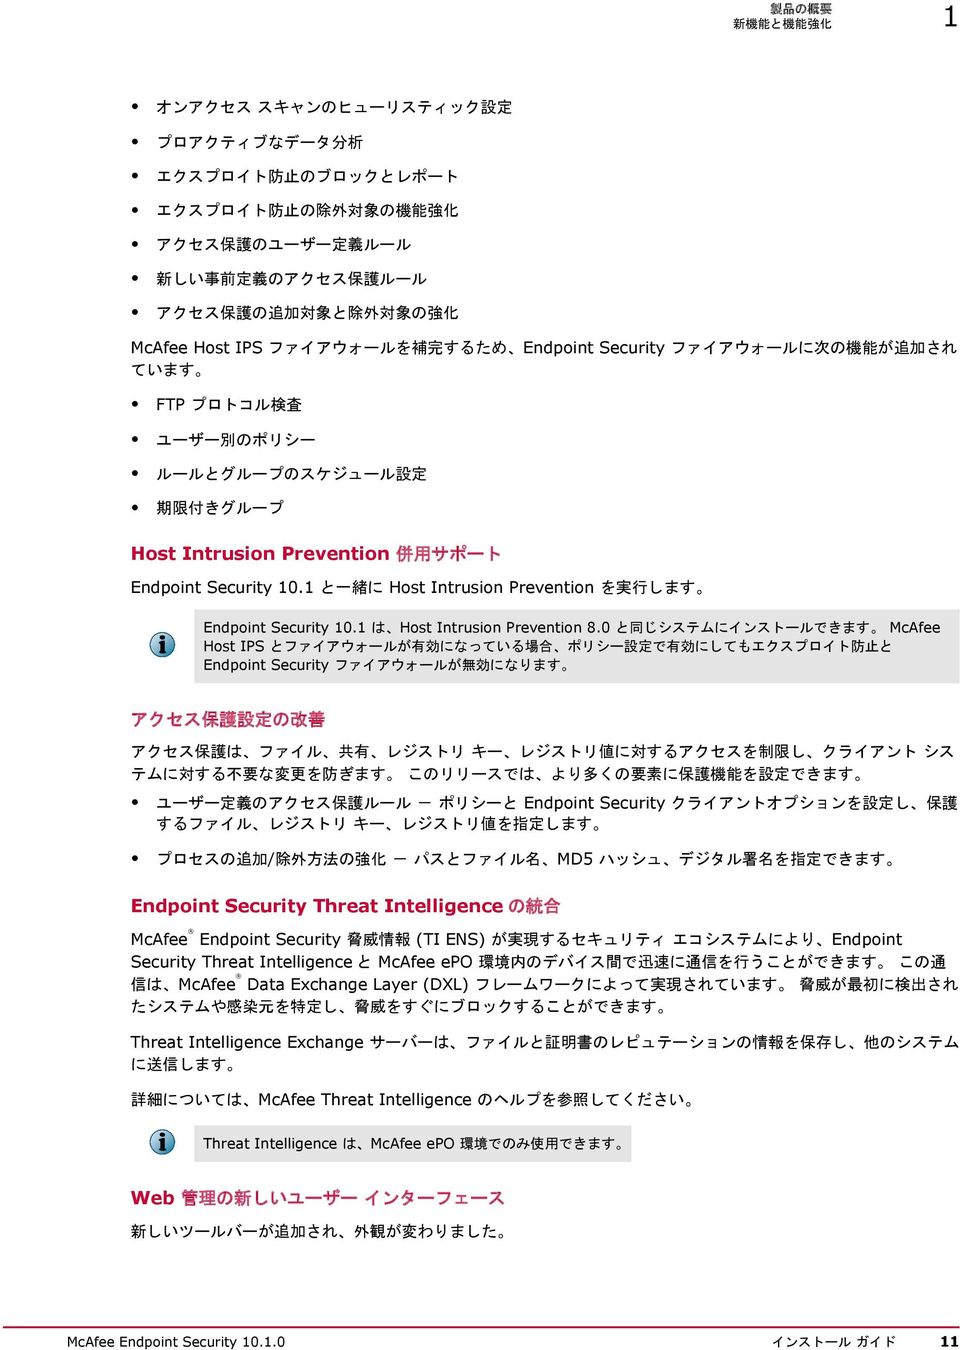 1 は Host Intrusion Prevention 8.